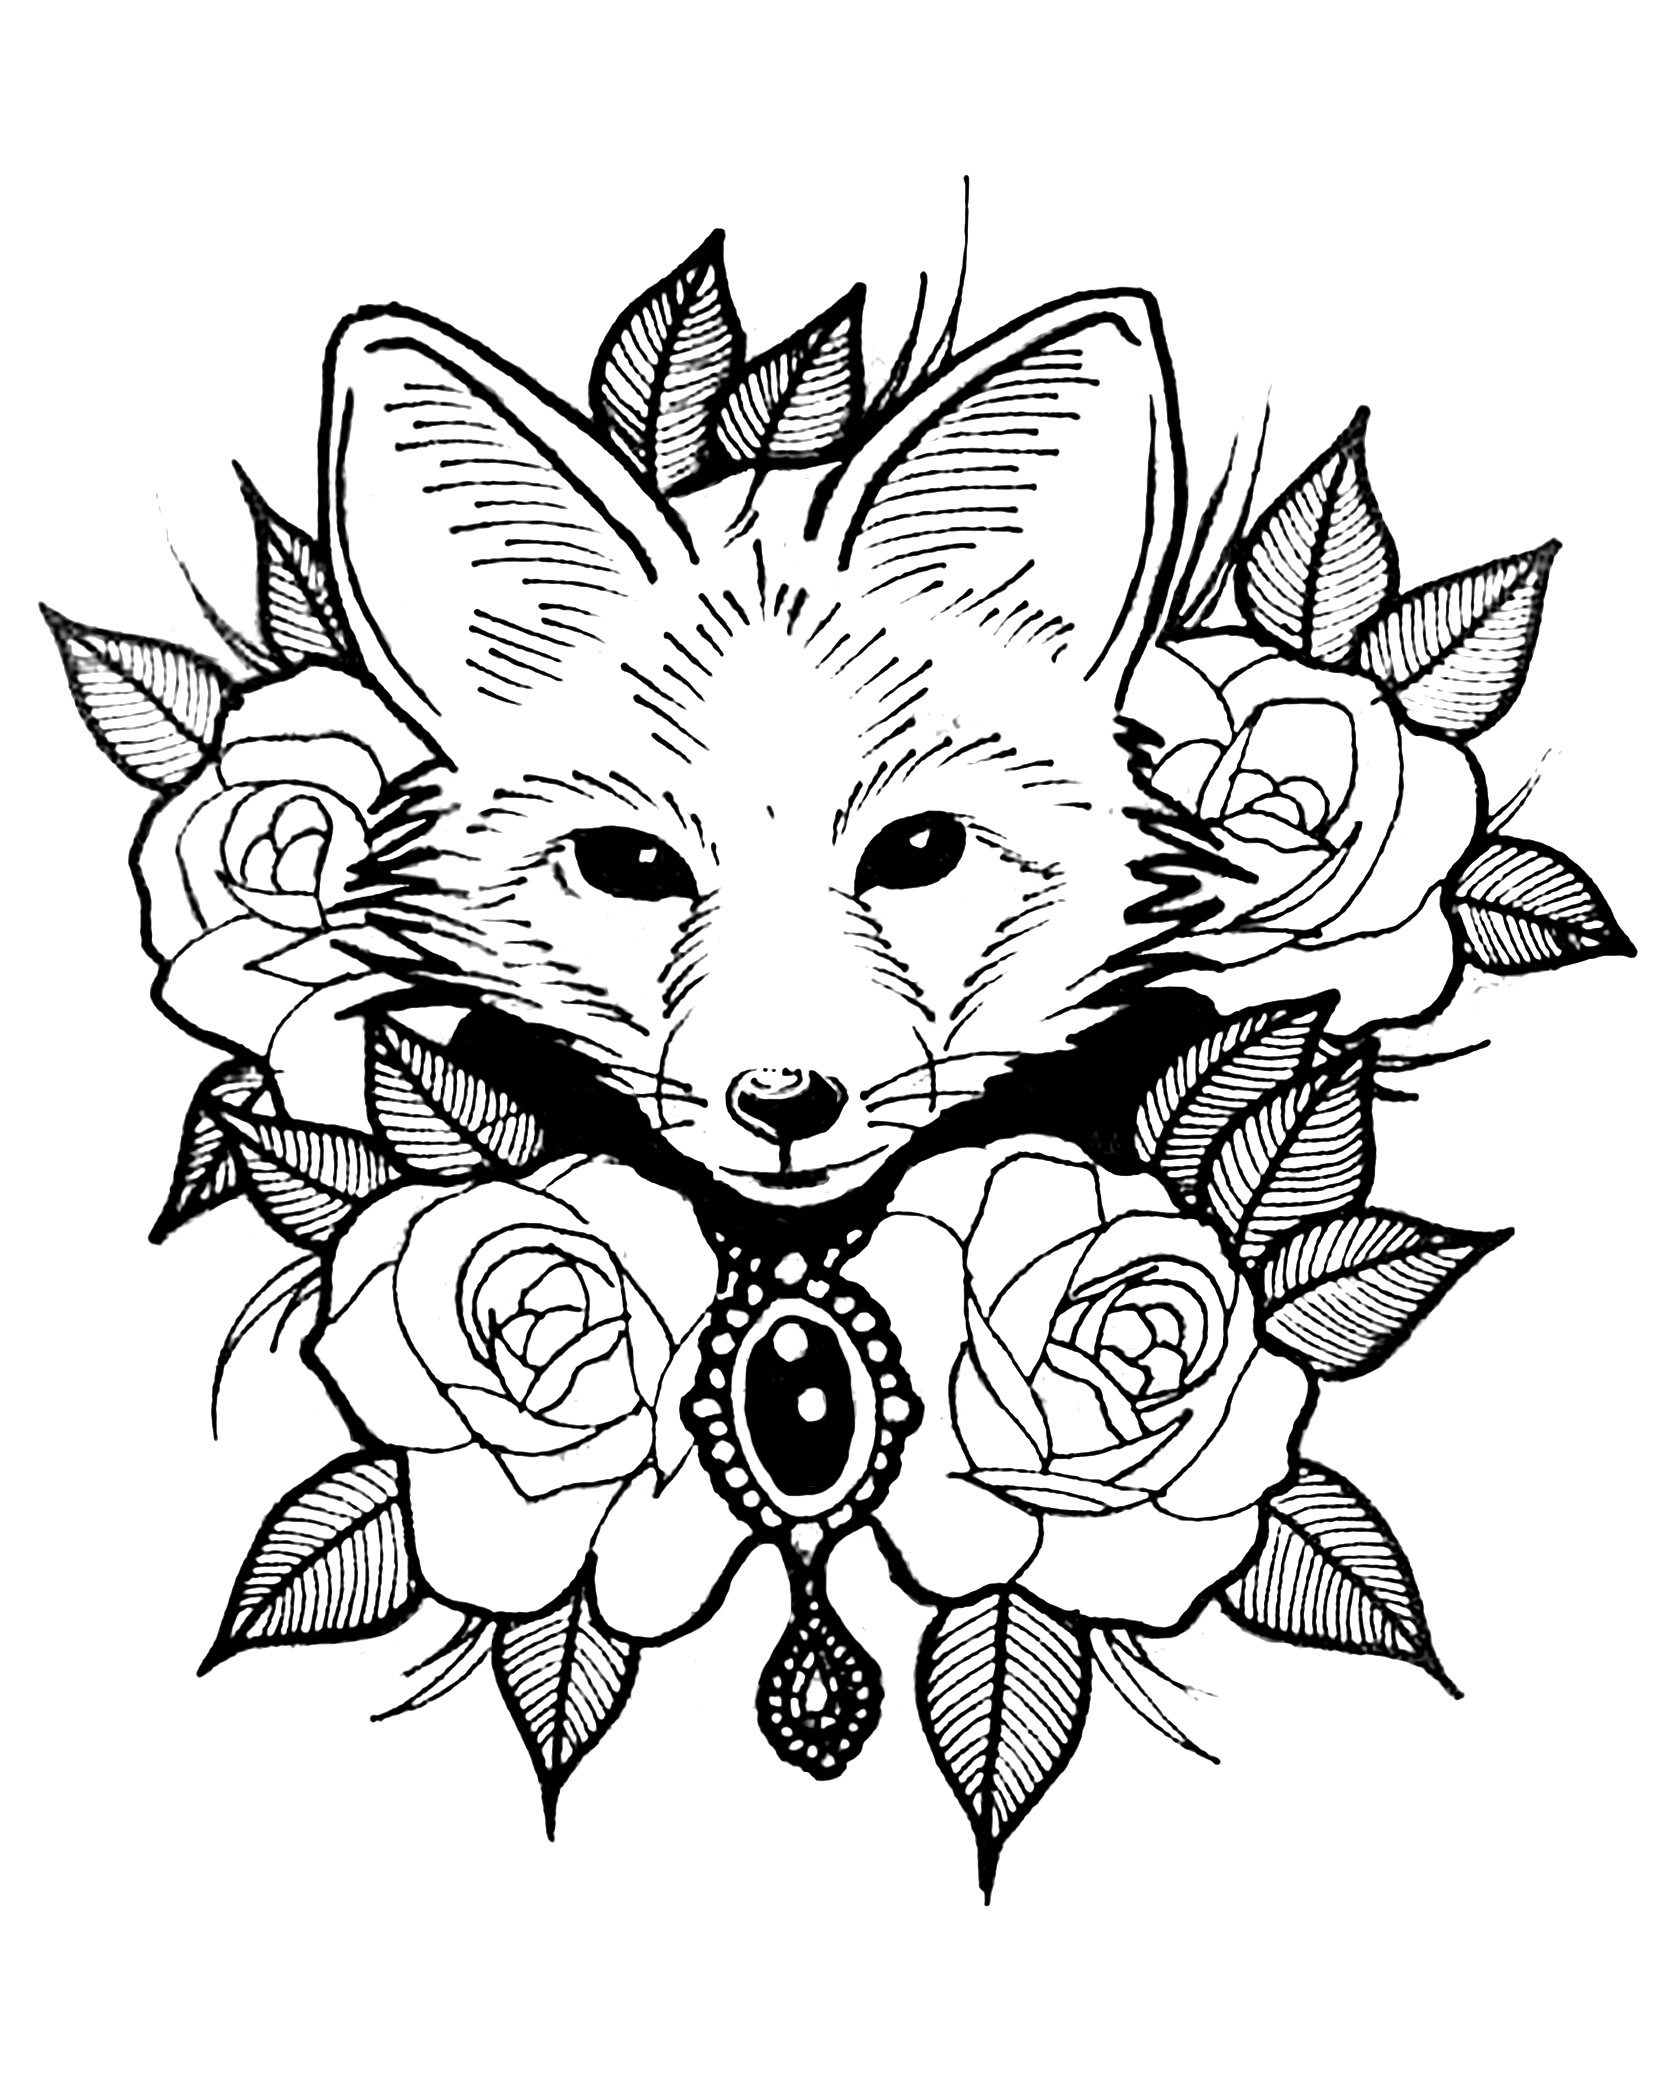 Fox Coloring Sheet : coloring, sheet, Roses, Foxes, Adult, Coloring, Pages